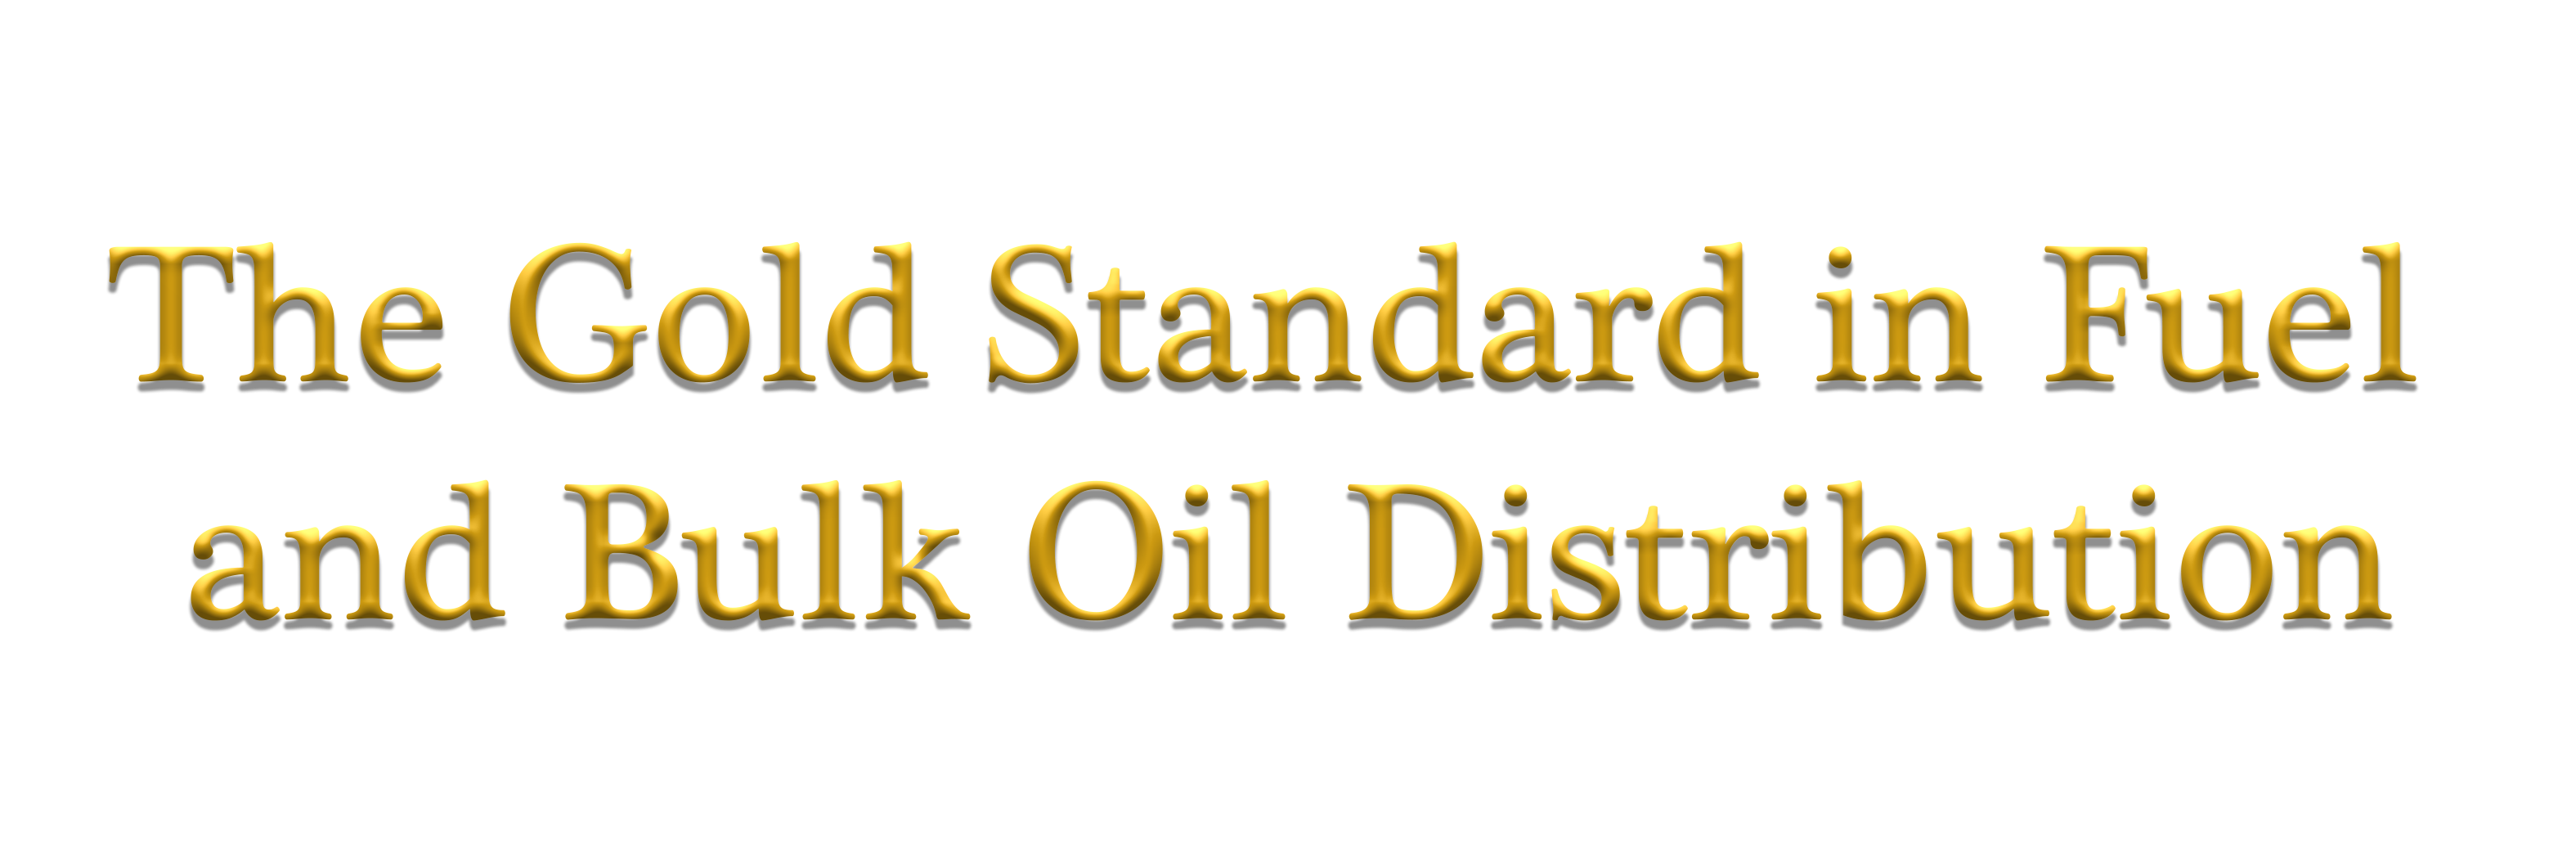 Port Consolidated | Fuel and Bulk Oil Distributor